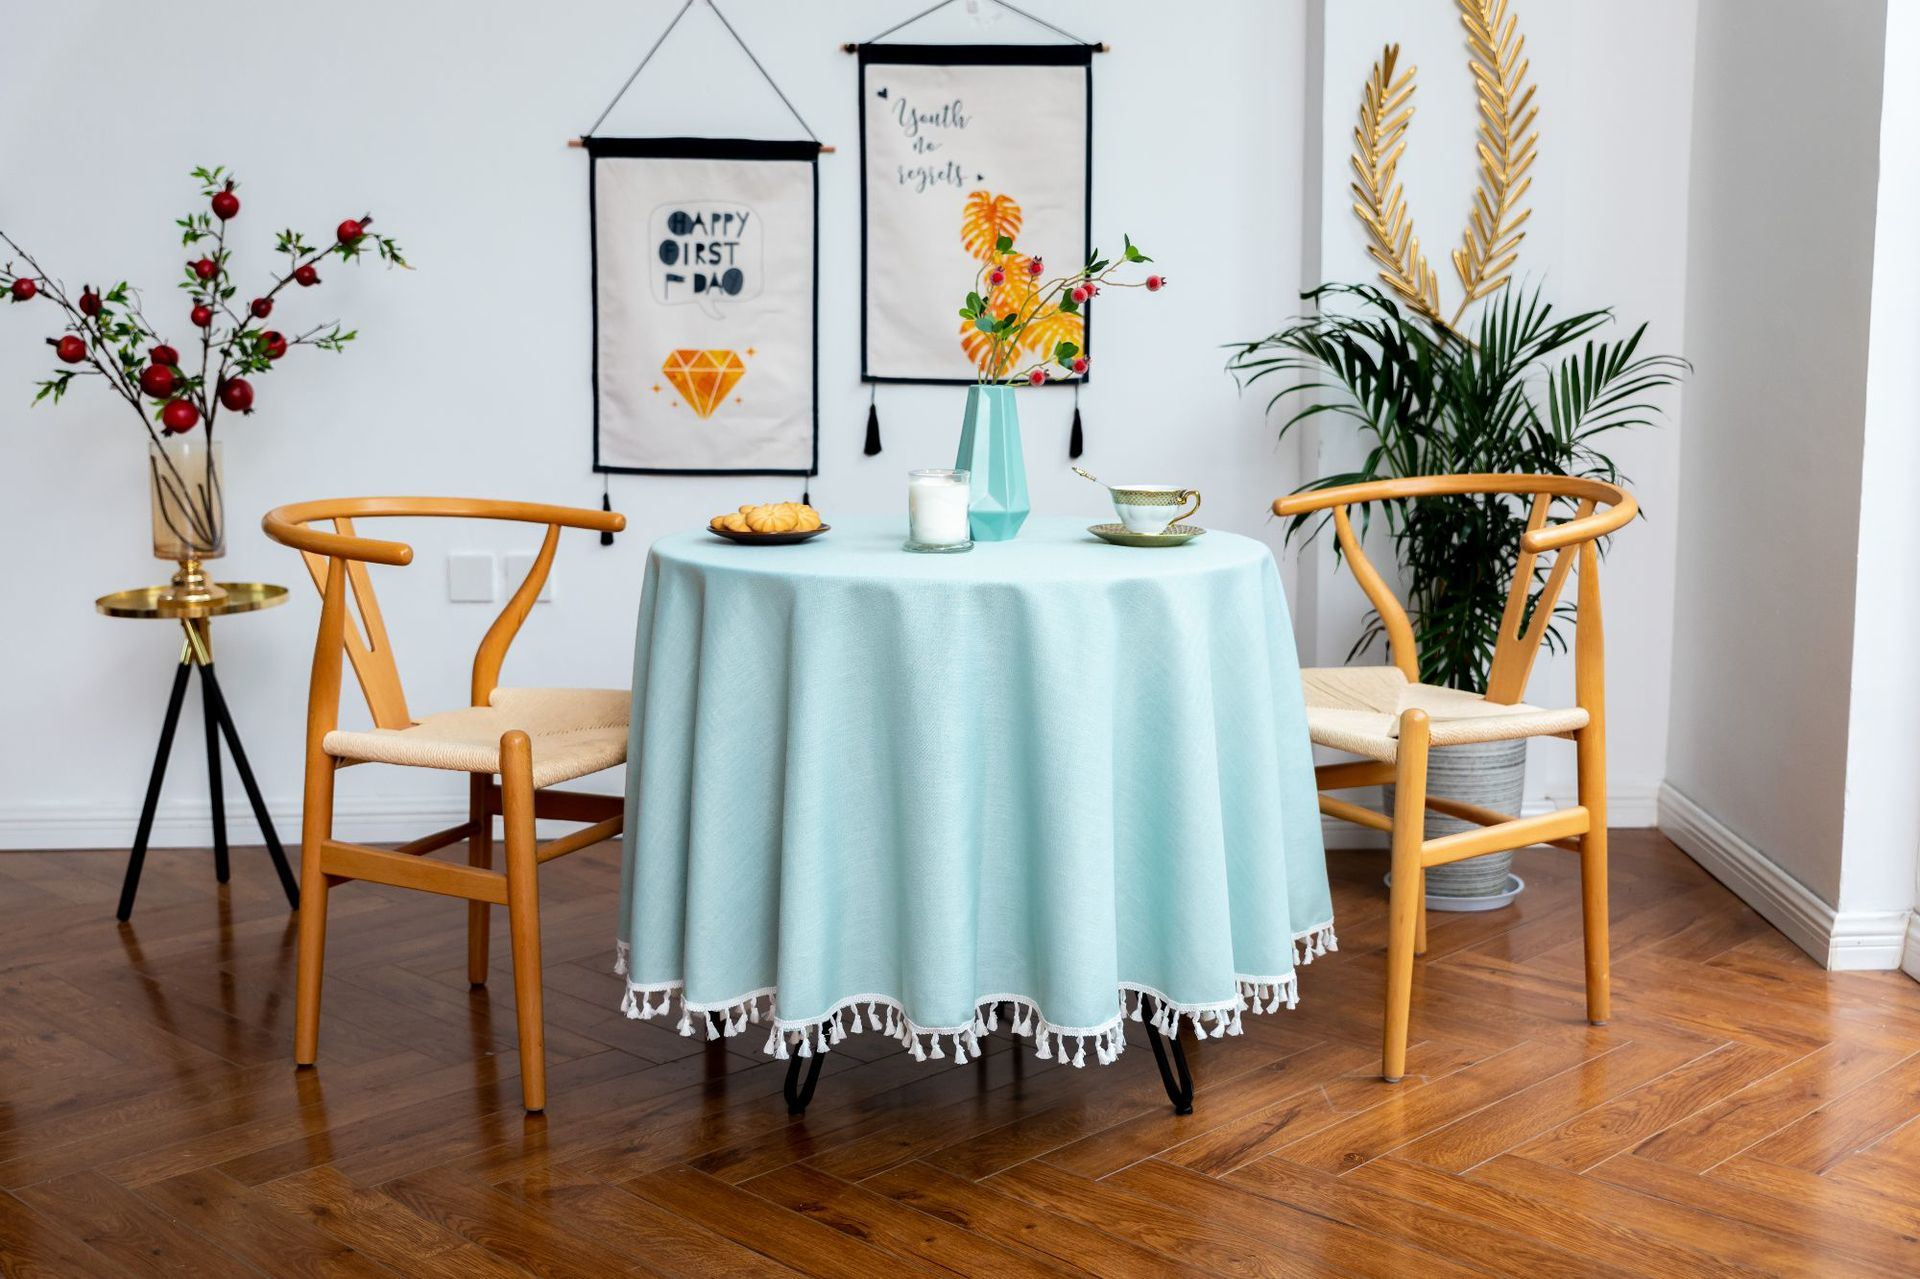 Cheap Round Cloth Dining Tablecloth Round Sky Blue Circle Dining Table Cloth Dining Table Home China Cheap Round Cloth Tablecloth And Dining Tablecloth Price Made In China Com